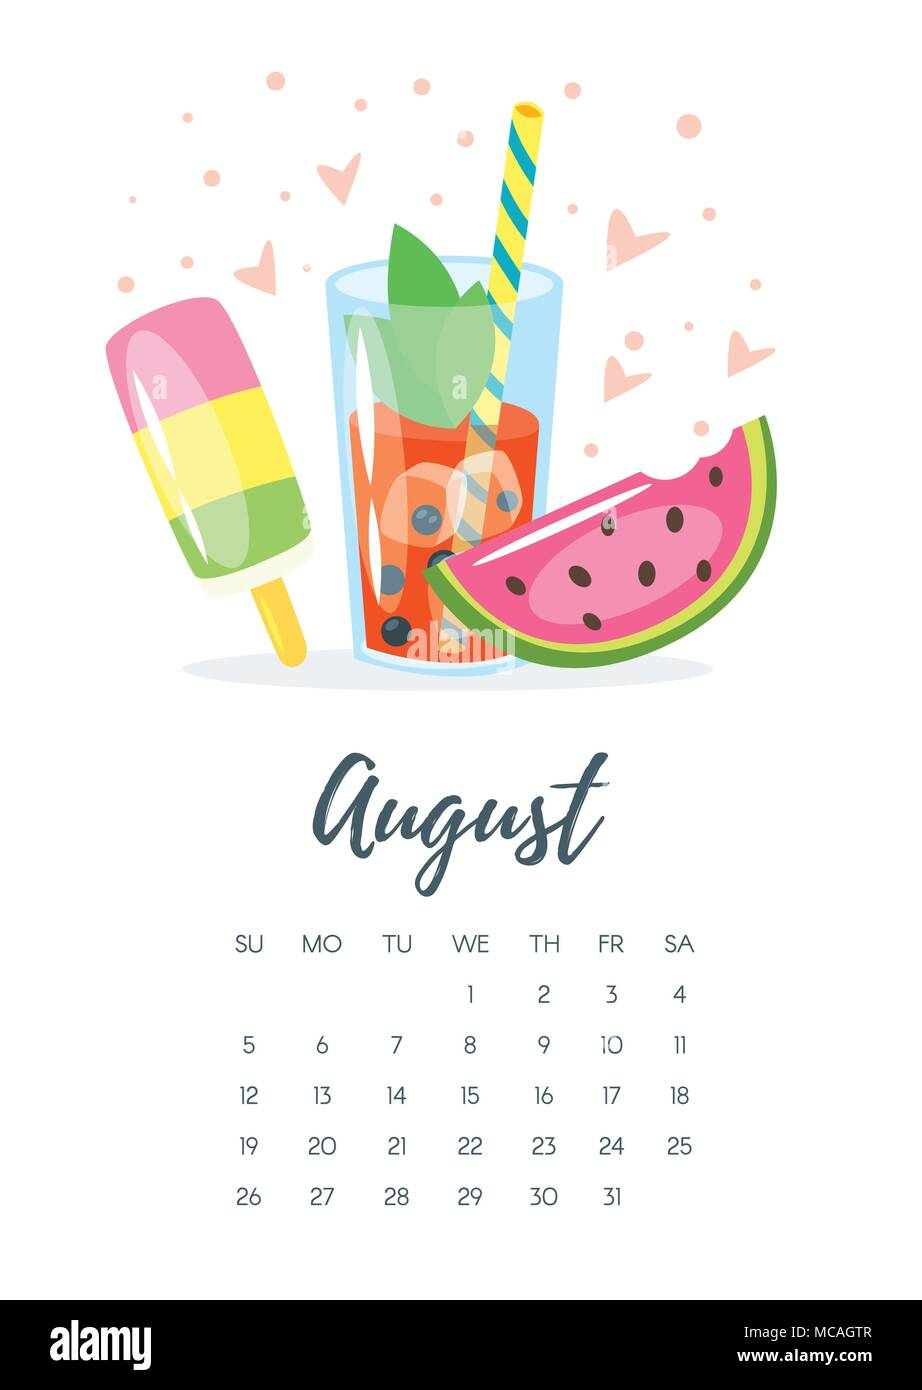 vector cartoon style illustration d u0026 39 ao u00fbt 2018 calendrier